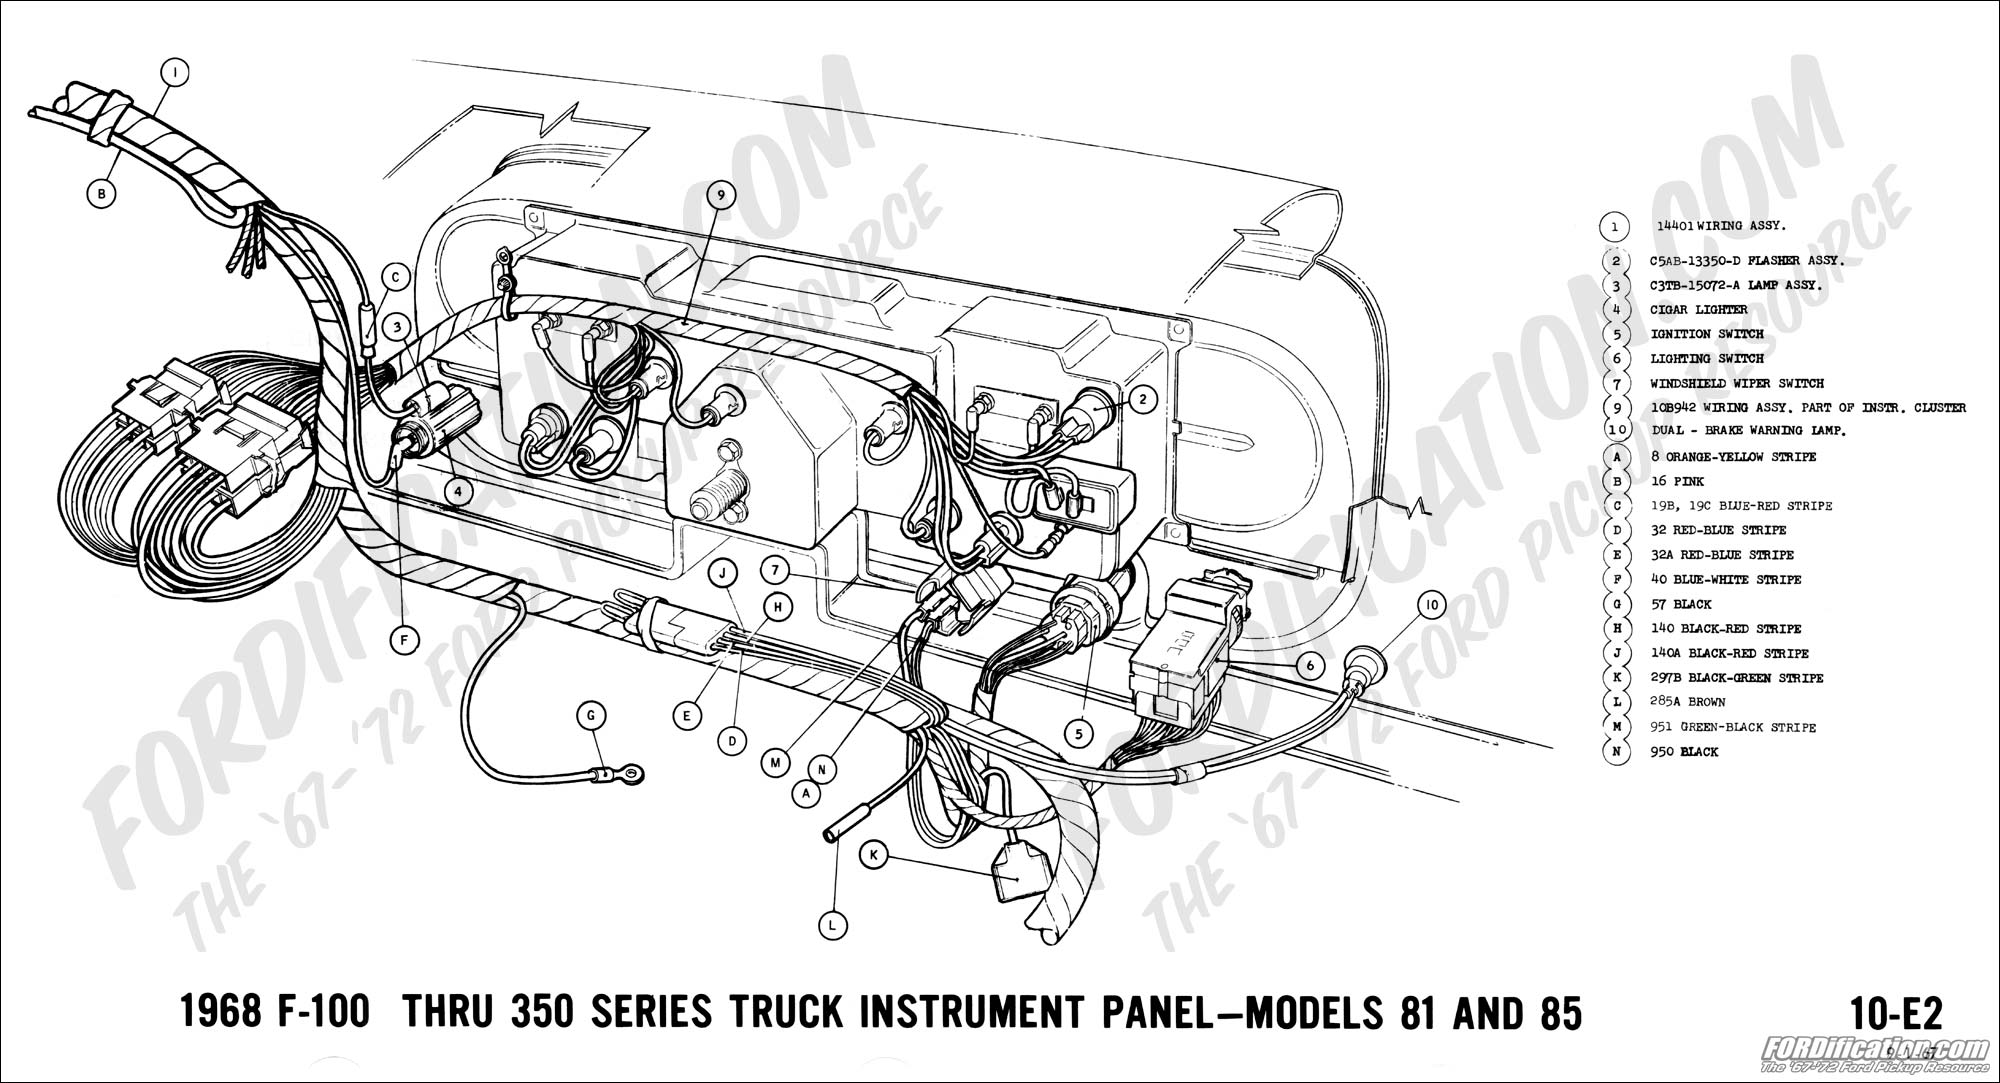 1972 ford f 250 wiper switch wiring diagram 1973    ford       f    100 dash gauges    wiring       diagram       wiring    library  1973    ford       f    100 dash gauges    wiring       diagram       wiring    library